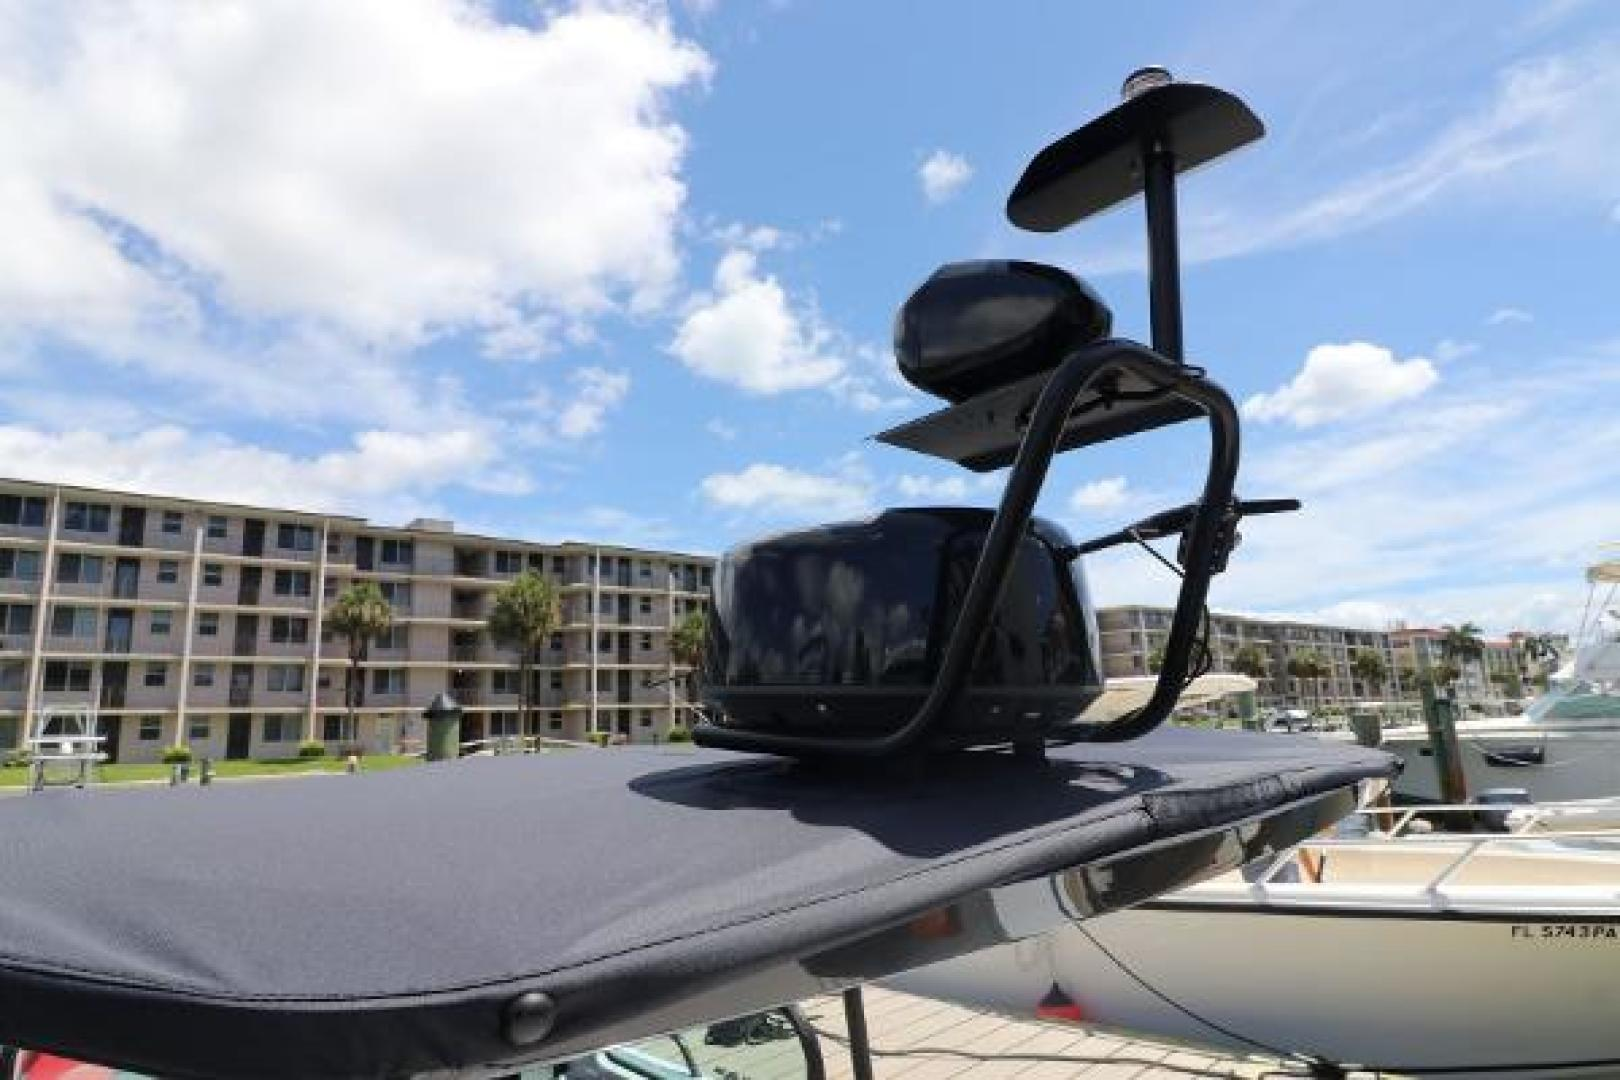 Shadow-Shadow 500 T-Top by Axopar 2020-Brabus Shadow 500 T Top by Axopar Tampa Bay-Florida-United States-1527783 | Thumbnail